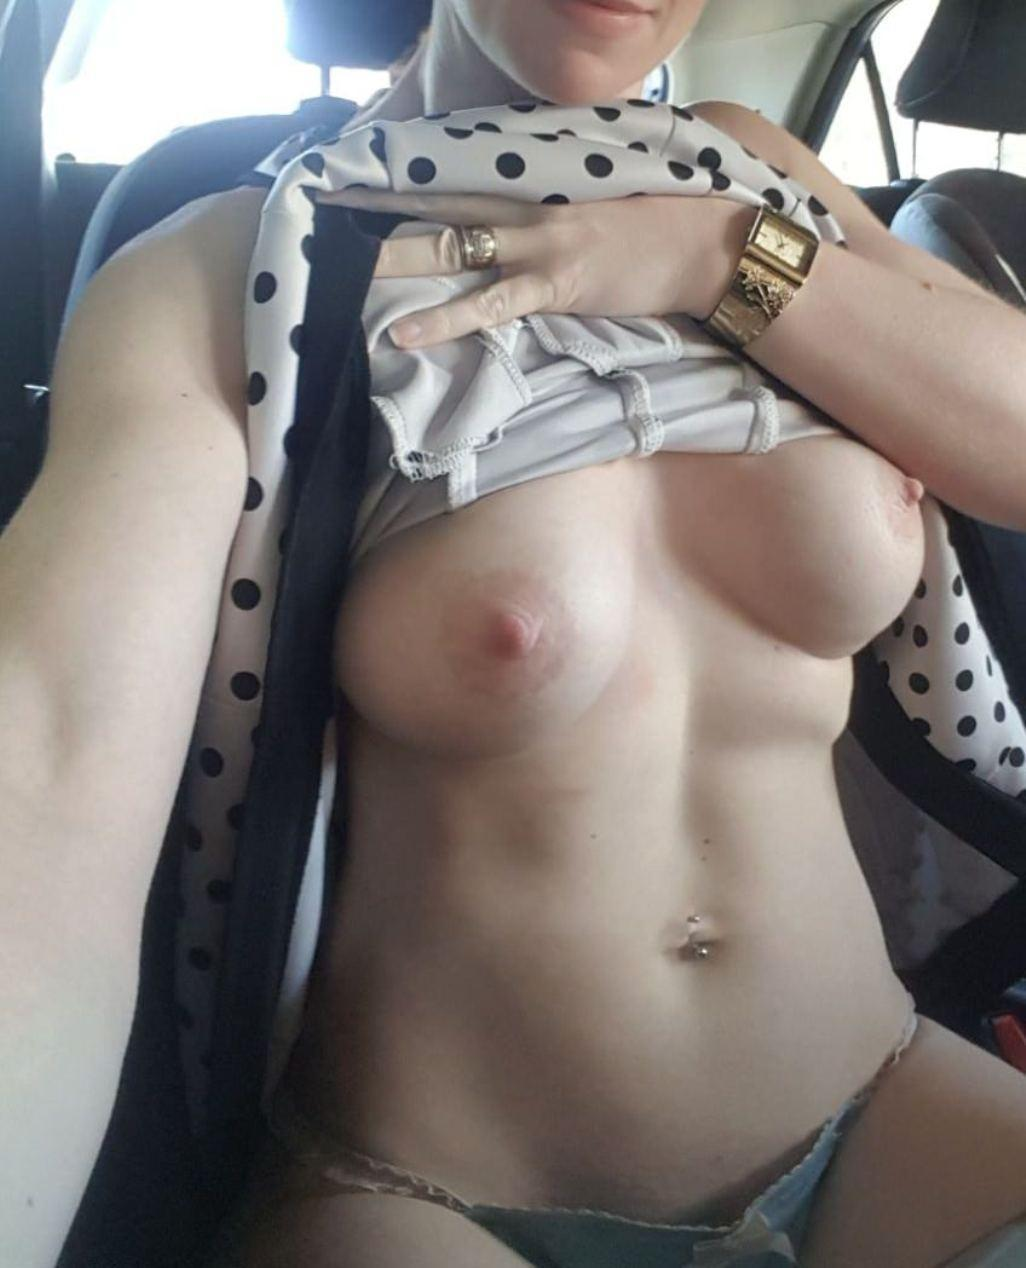 Very very nice car selfie, no bra today